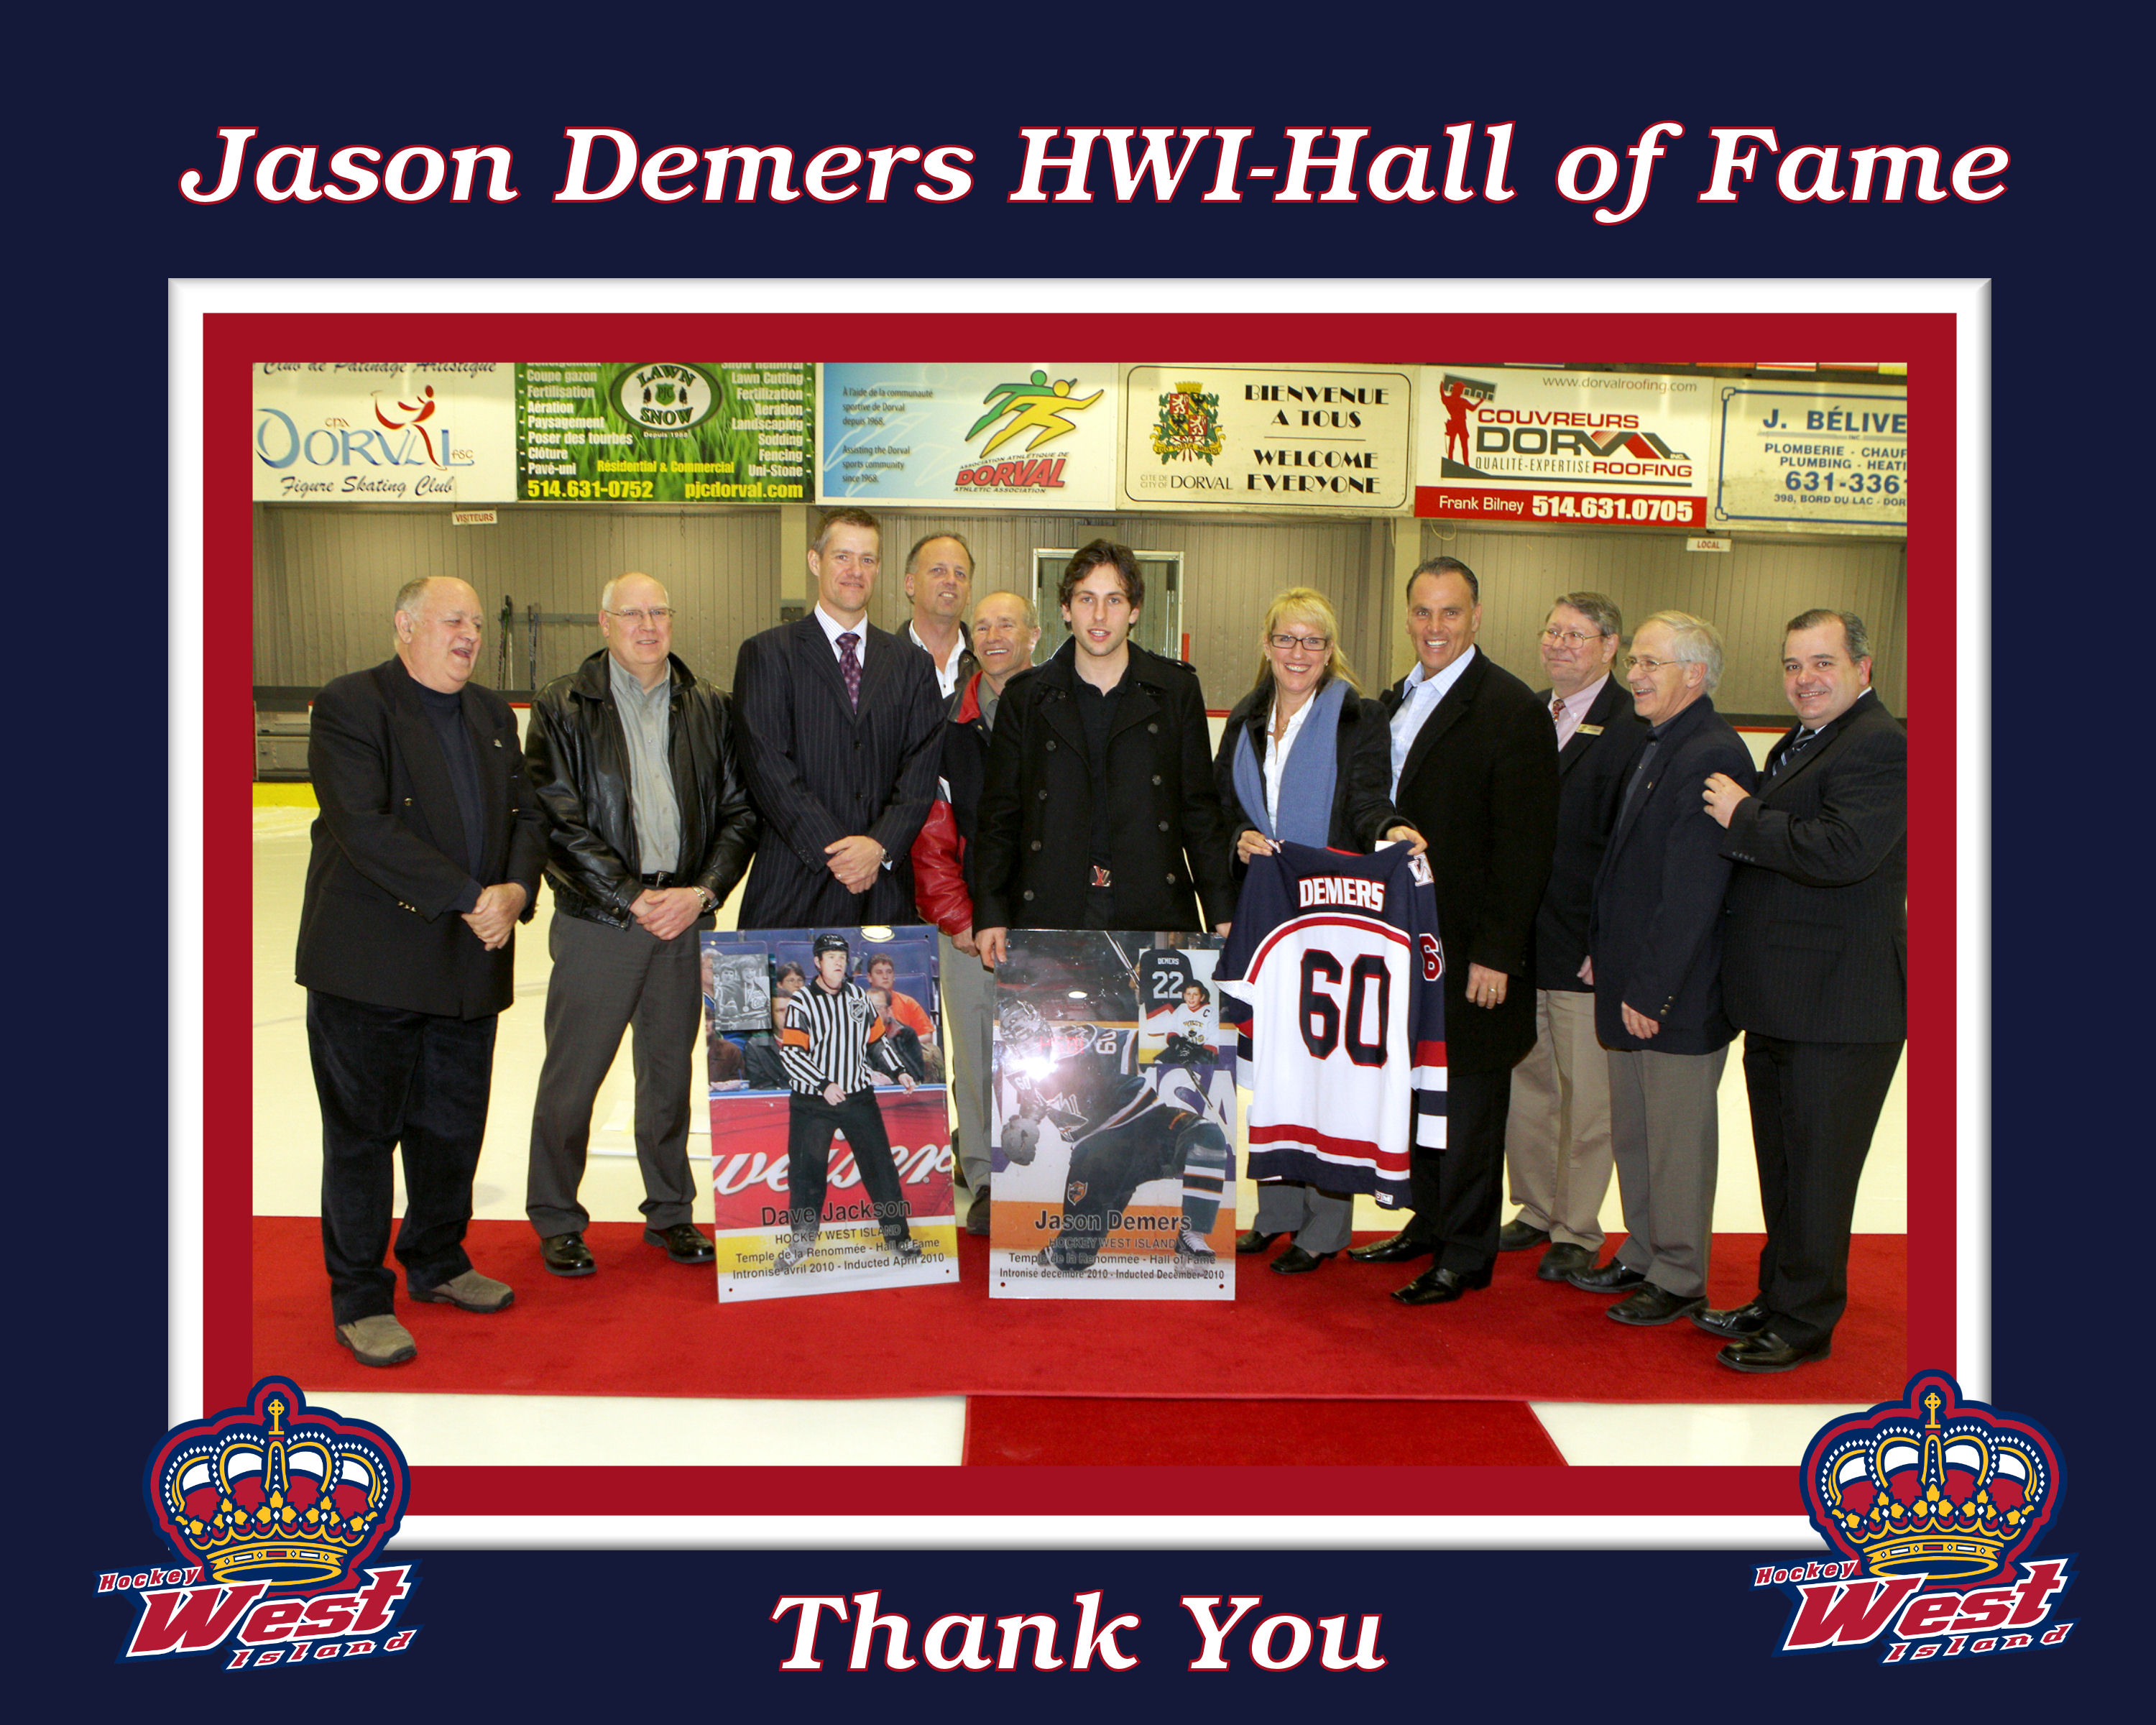 https://www.hockeywestisland.org/wp-content/uploads/2018/10/Jason-Demers-HWI-Hall-of-Fame-Thank-you.jpg